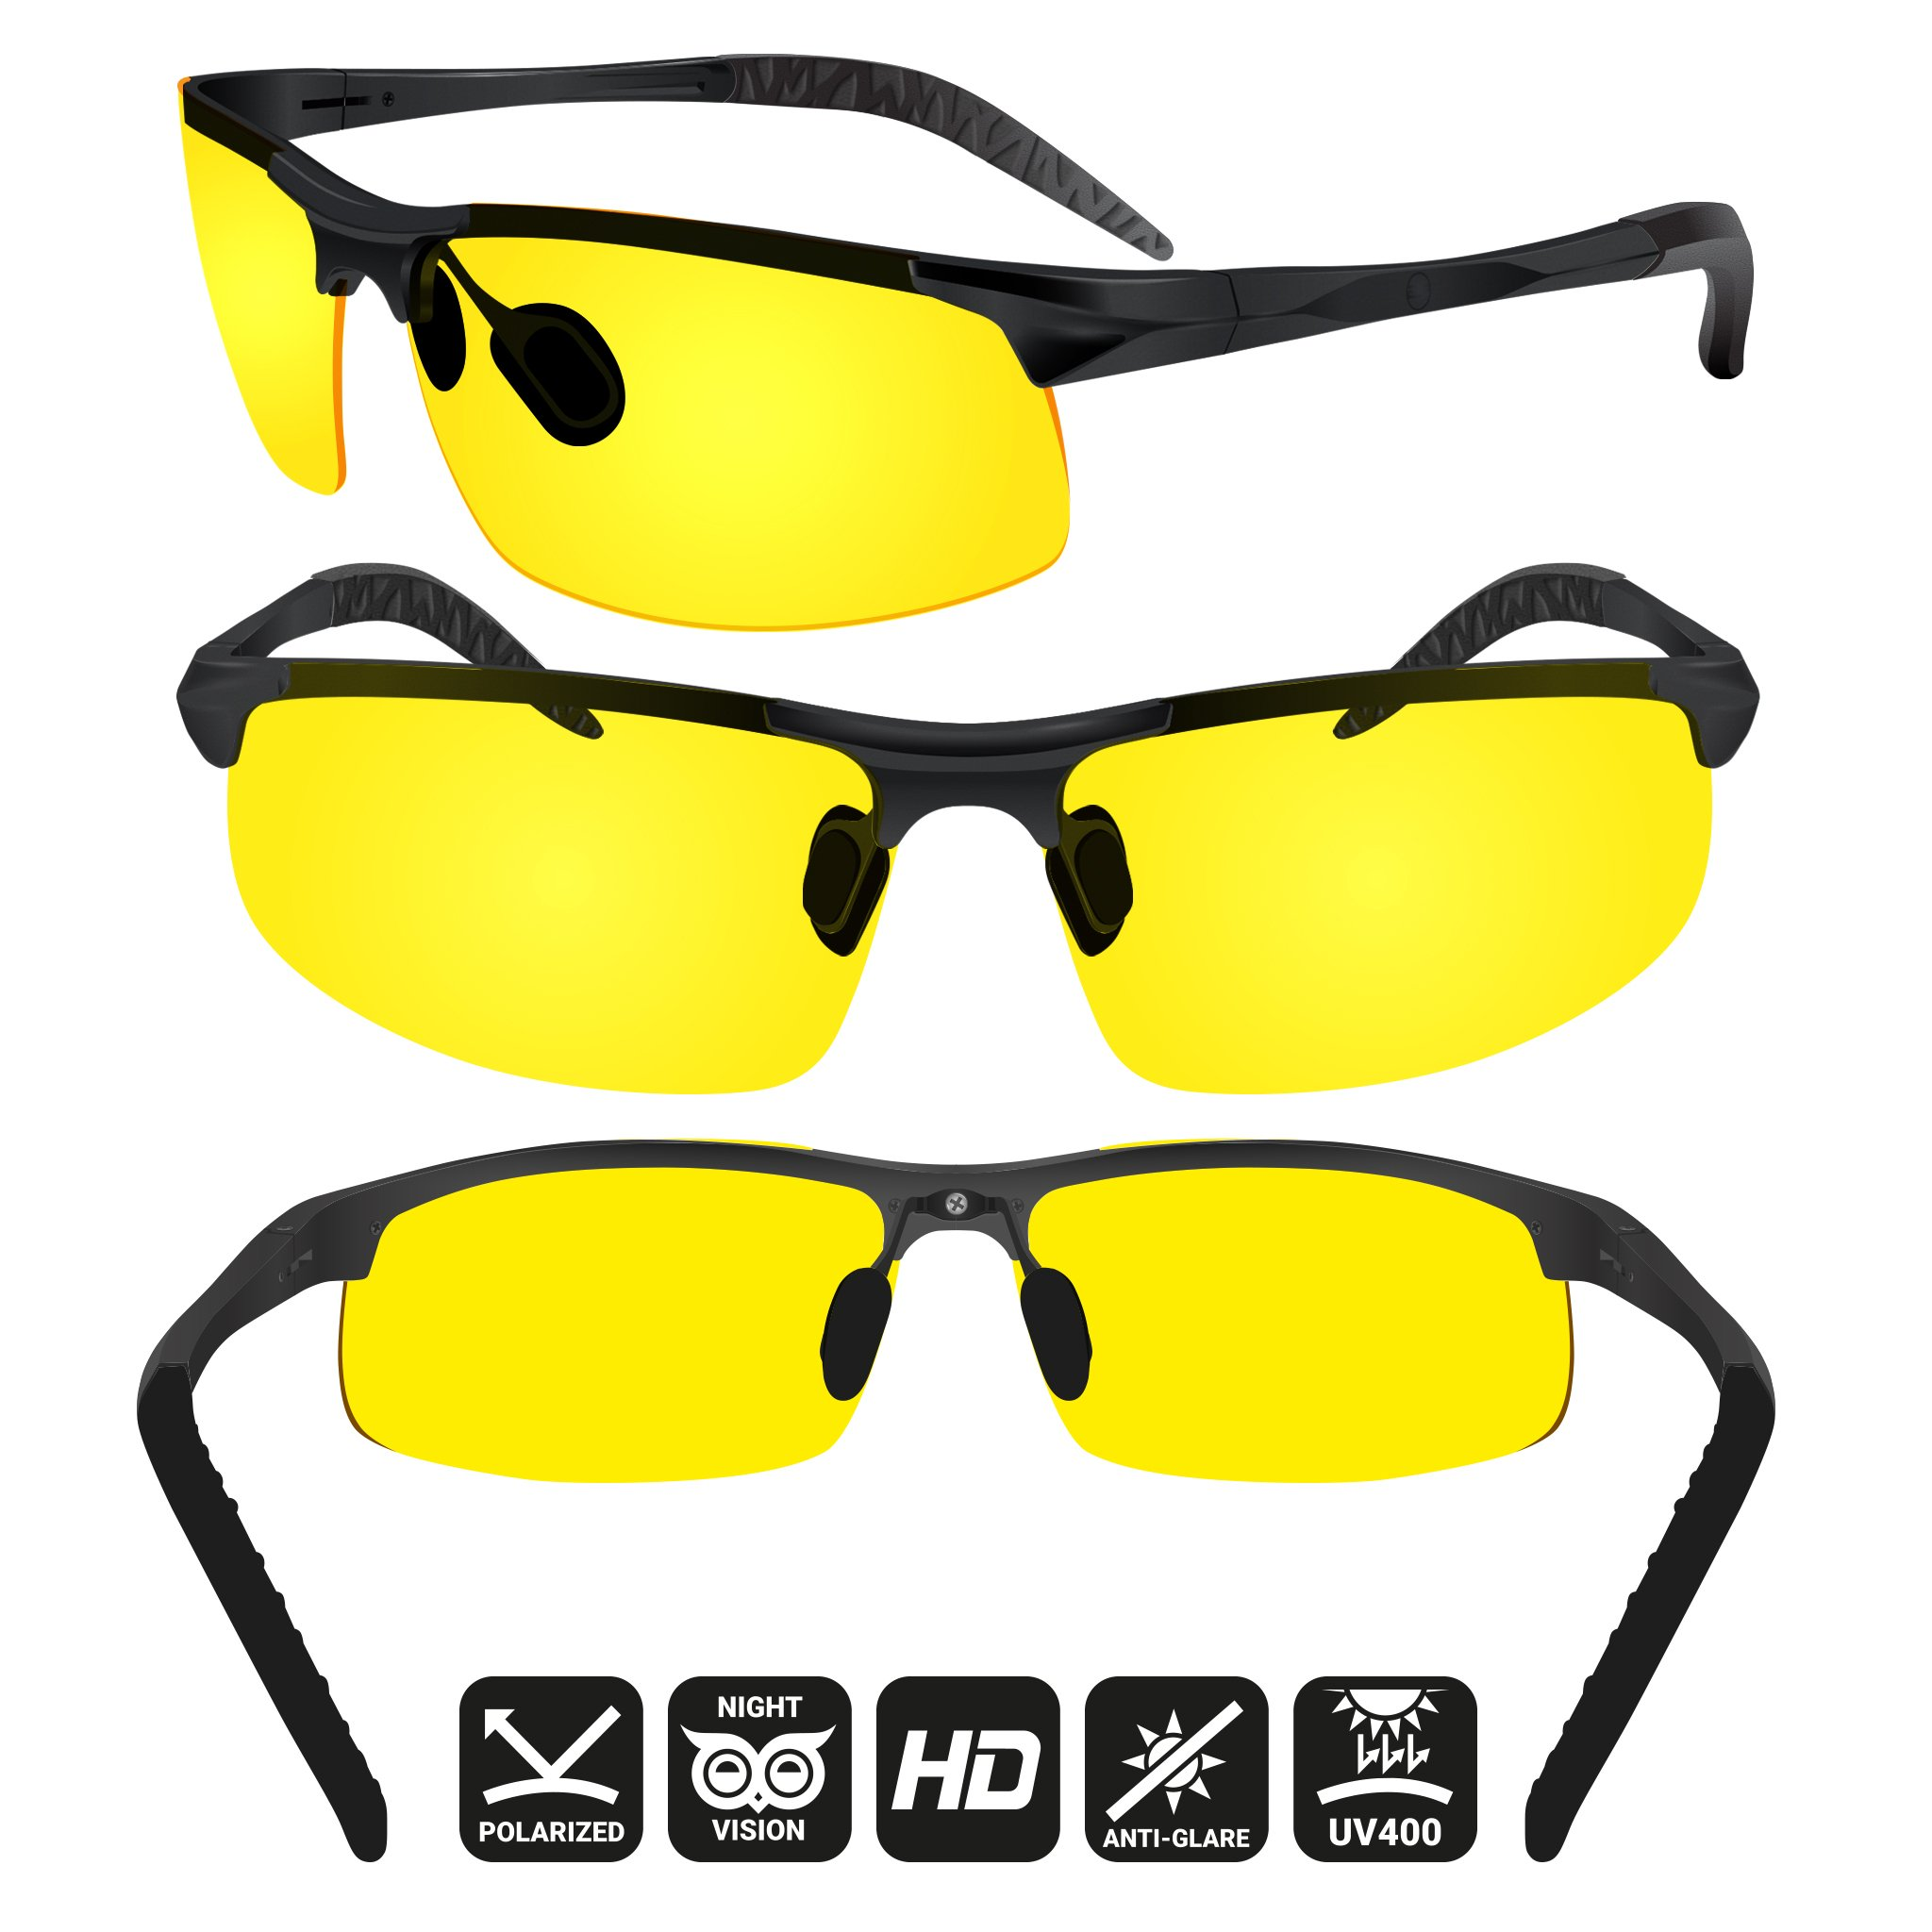 BLUPOND Night Driving Glasses - Semi Polarized Yellow Tint HD Vision Anti Glare Lens - Unbreakable Metal Frame with Car Clip Holder - Knight Visor (BlackCase) by BLUPOND (Image #2)